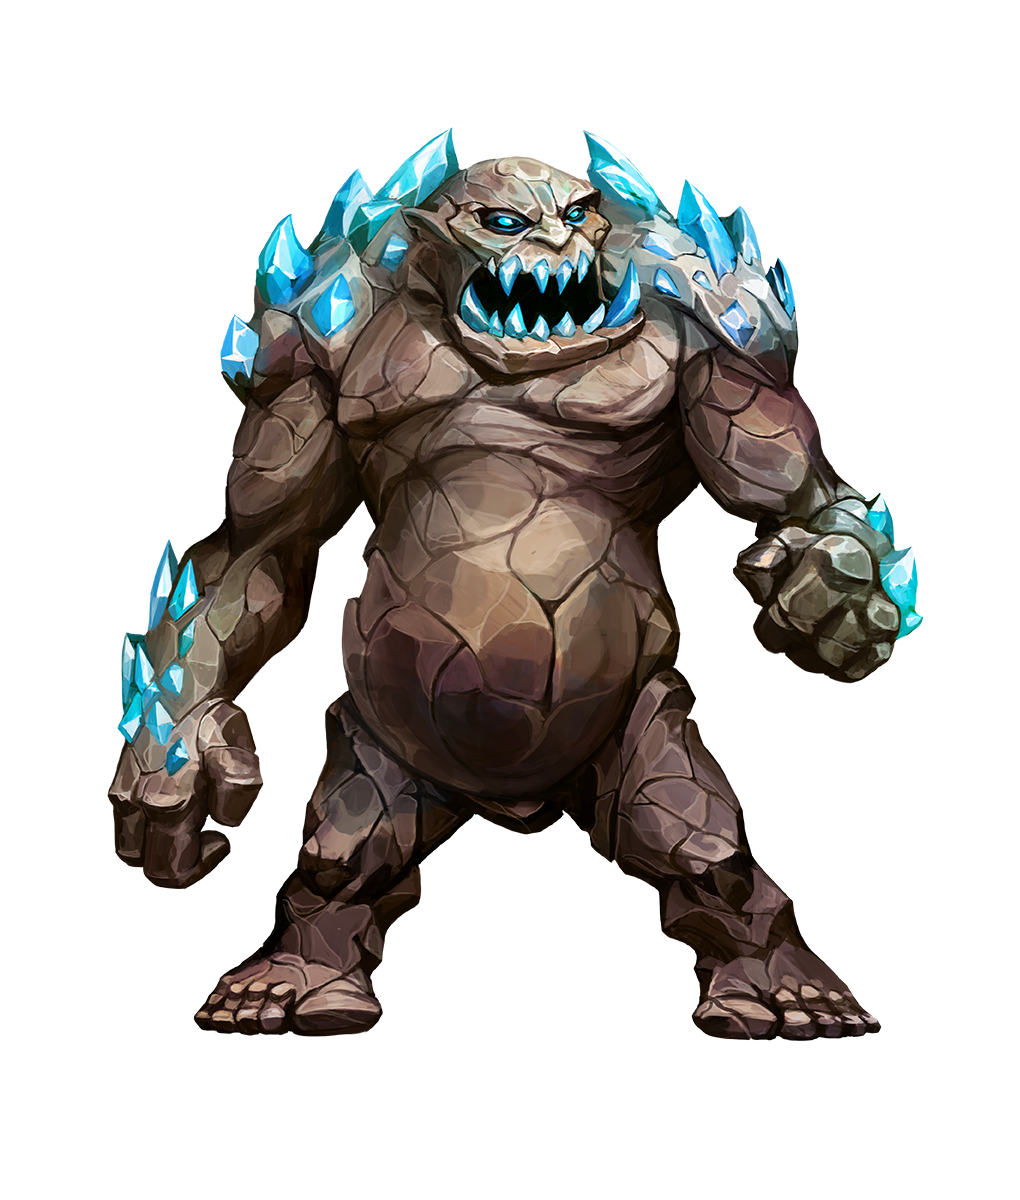 Cavern Troll - Monsters - Archives of Nethys: Pathfinder 2nd Edition  Database